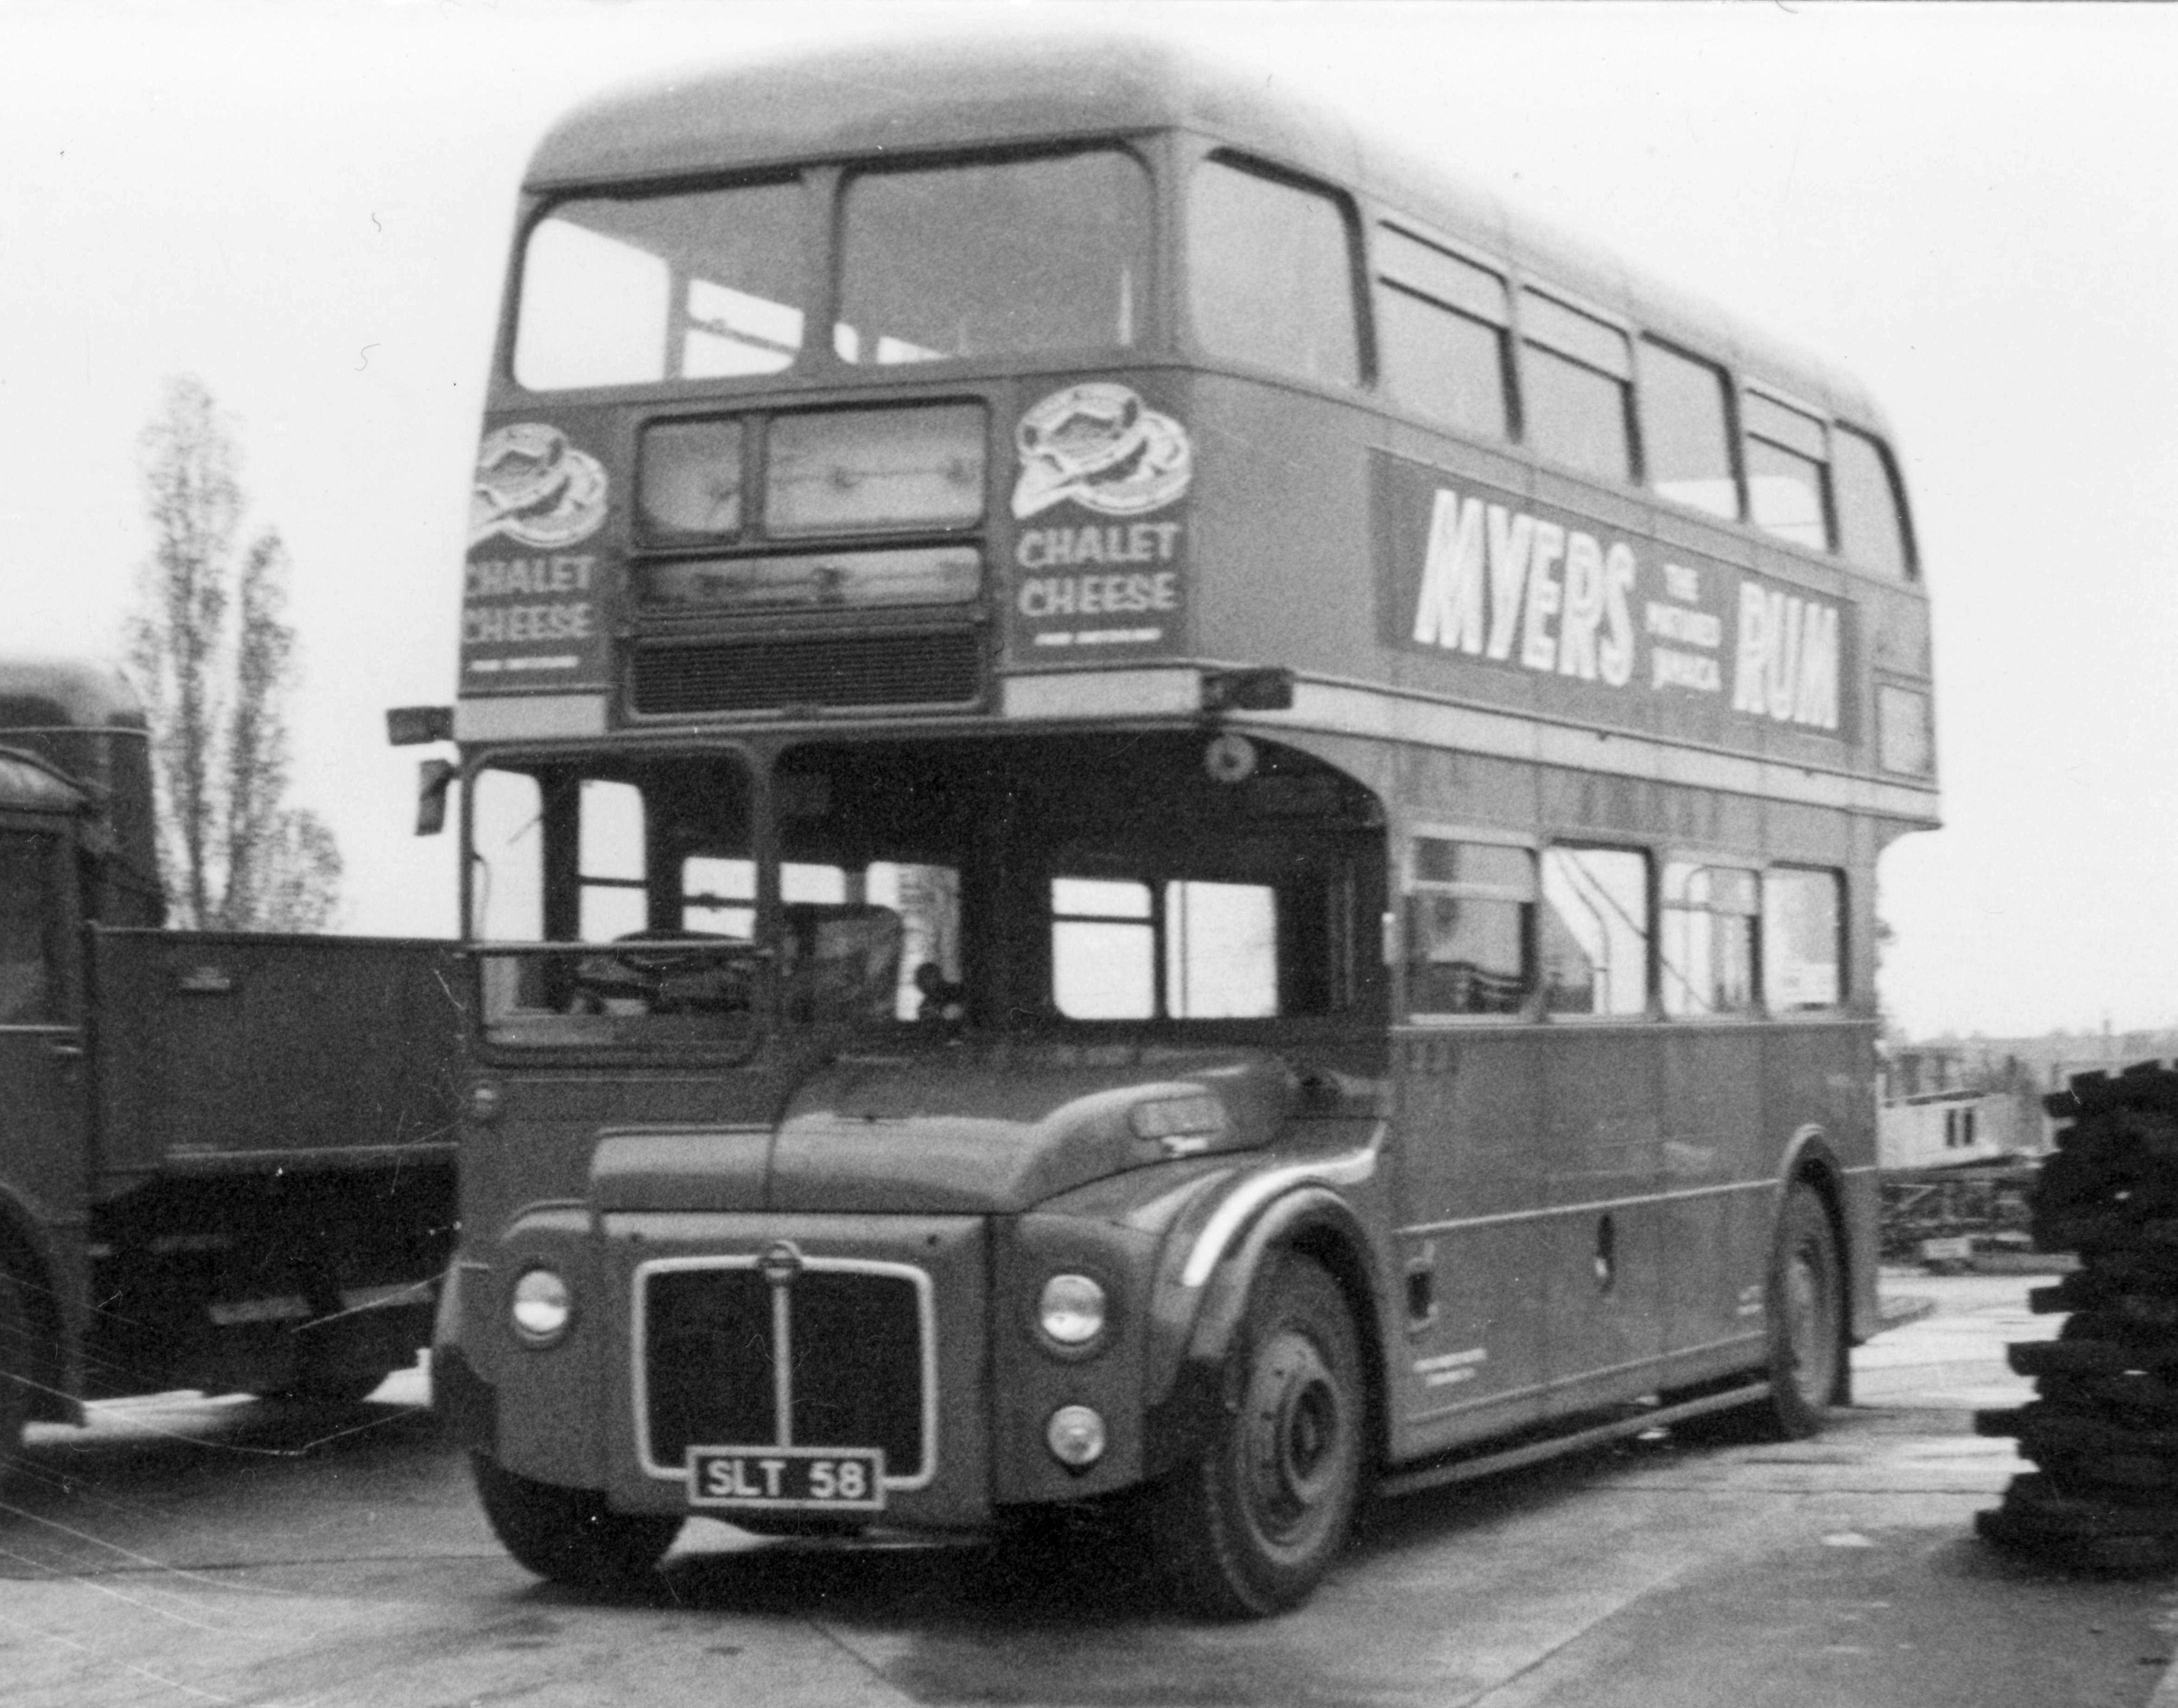 Accident In Surrey Today >> 1957 Leyland Routemaster prototype bus - RML3 - London Bus ...